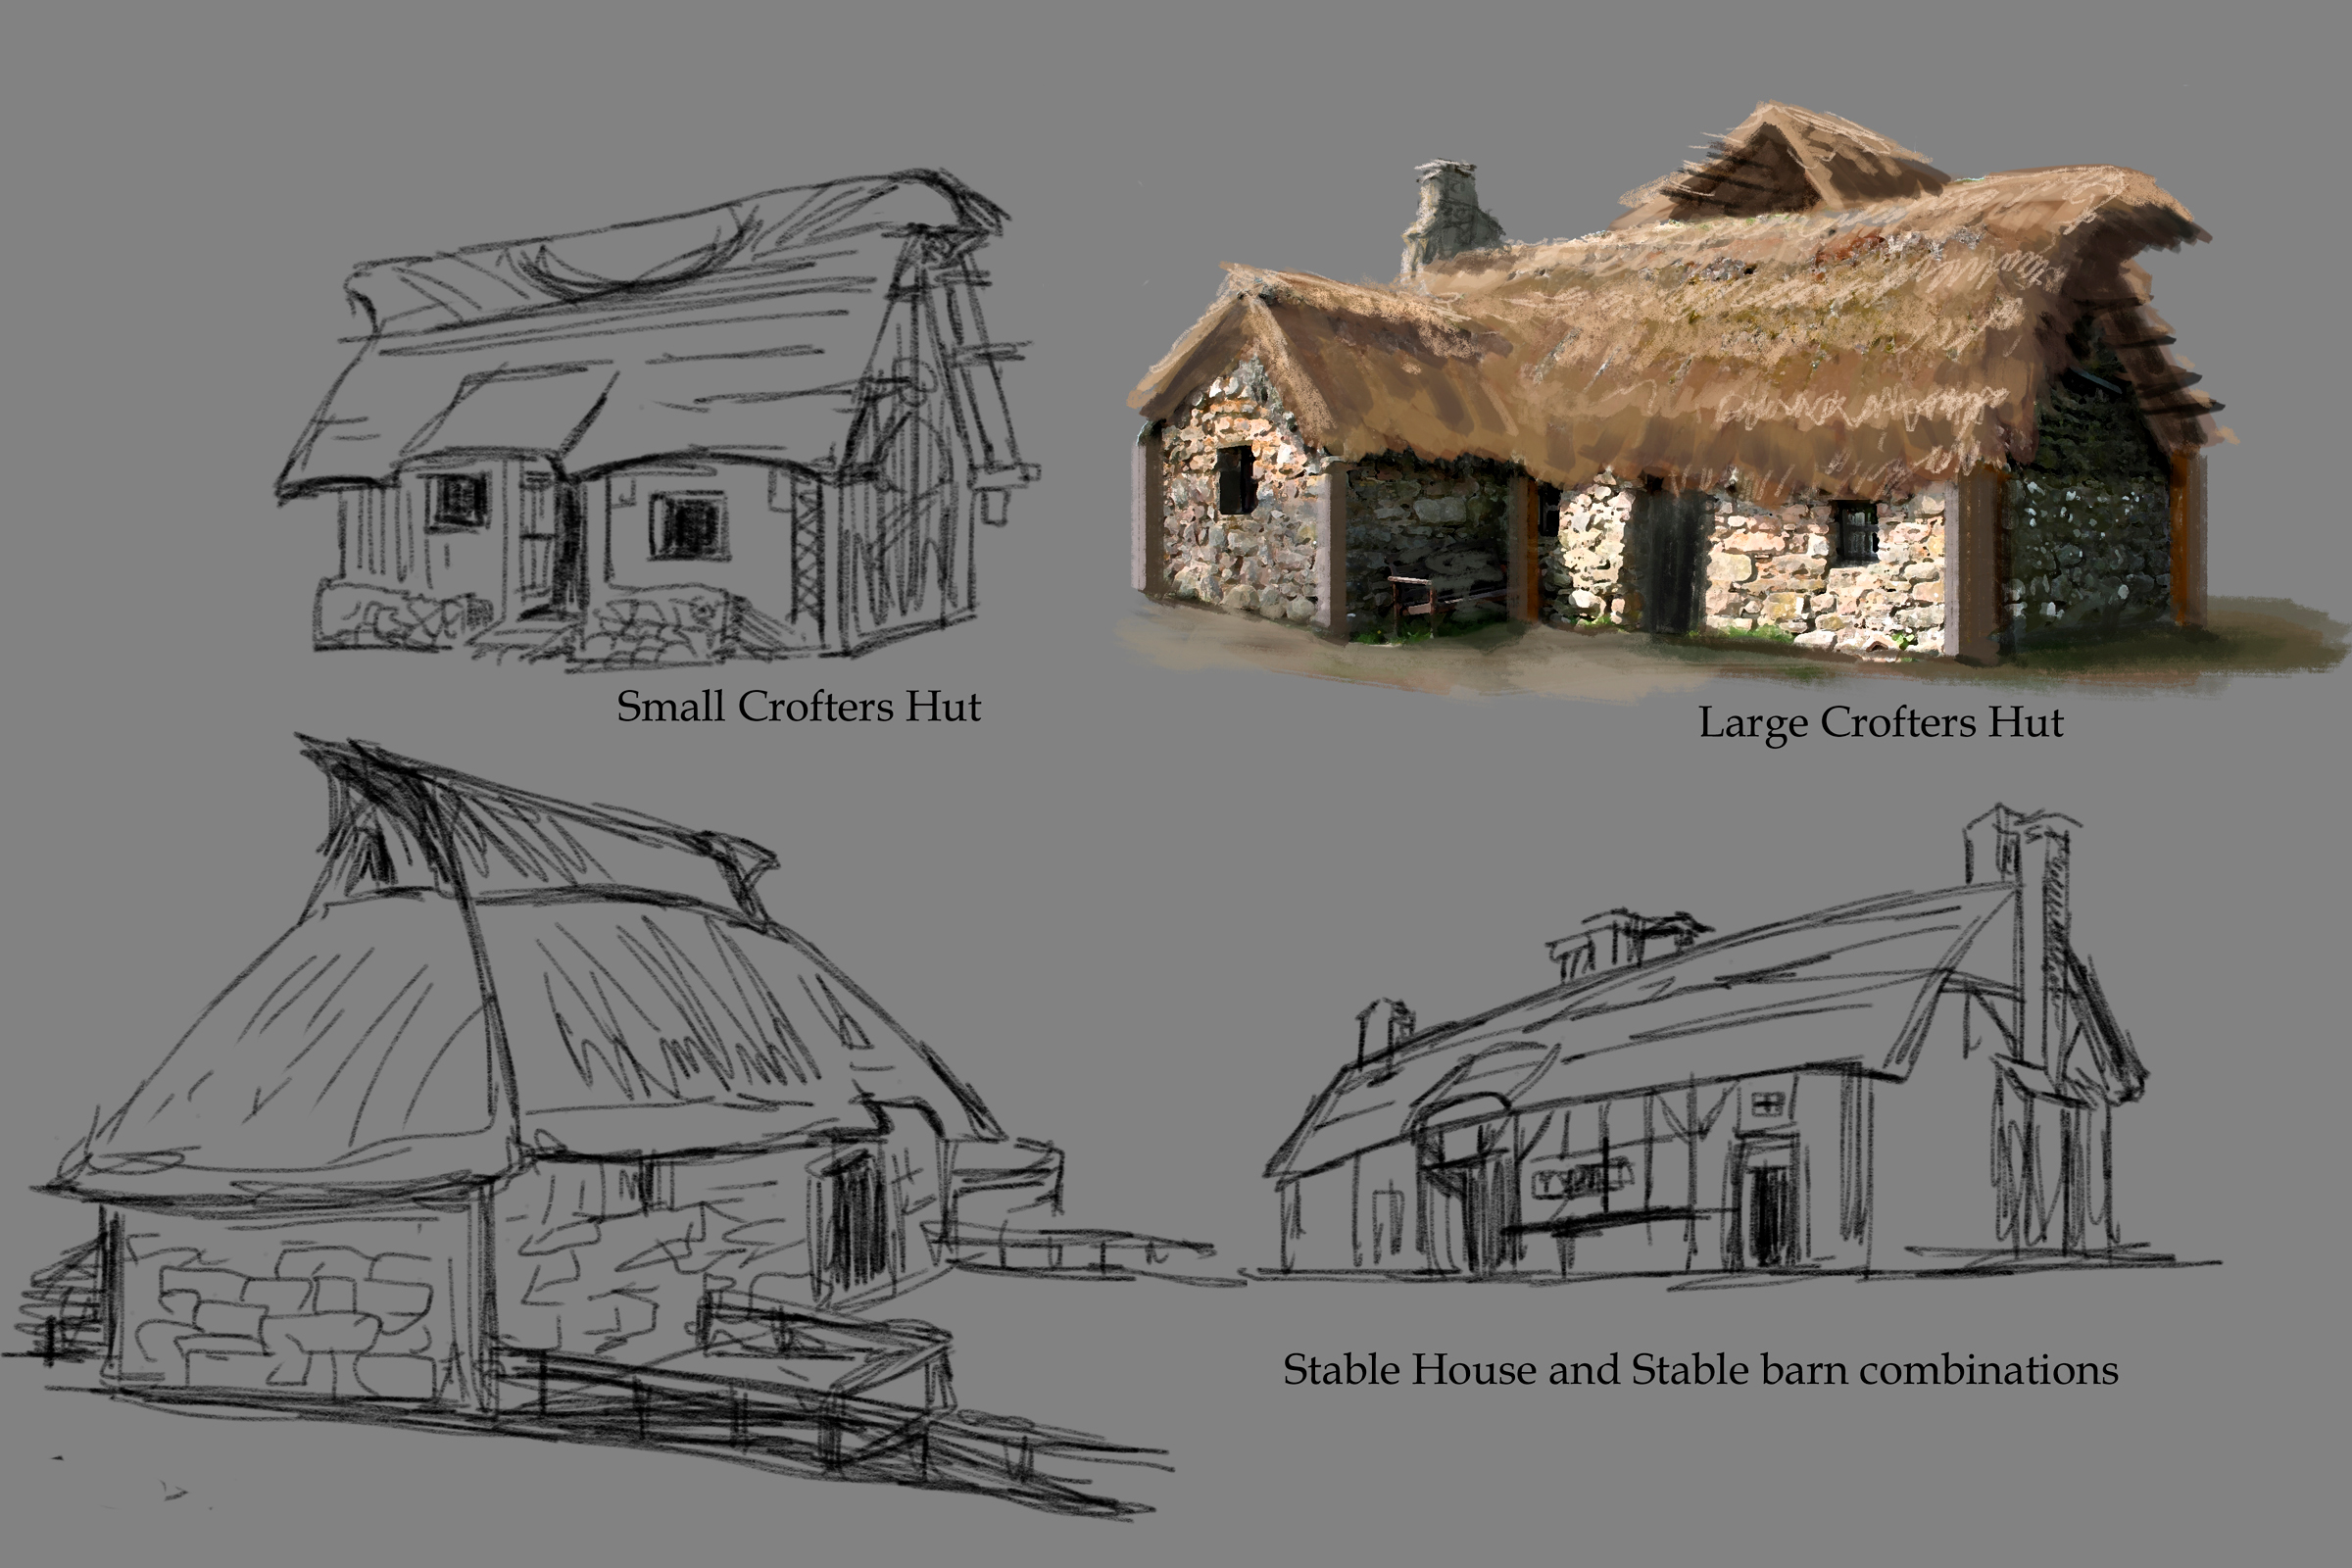 LOTRO_Riders_of_Rohan_Crofters_Huts_2